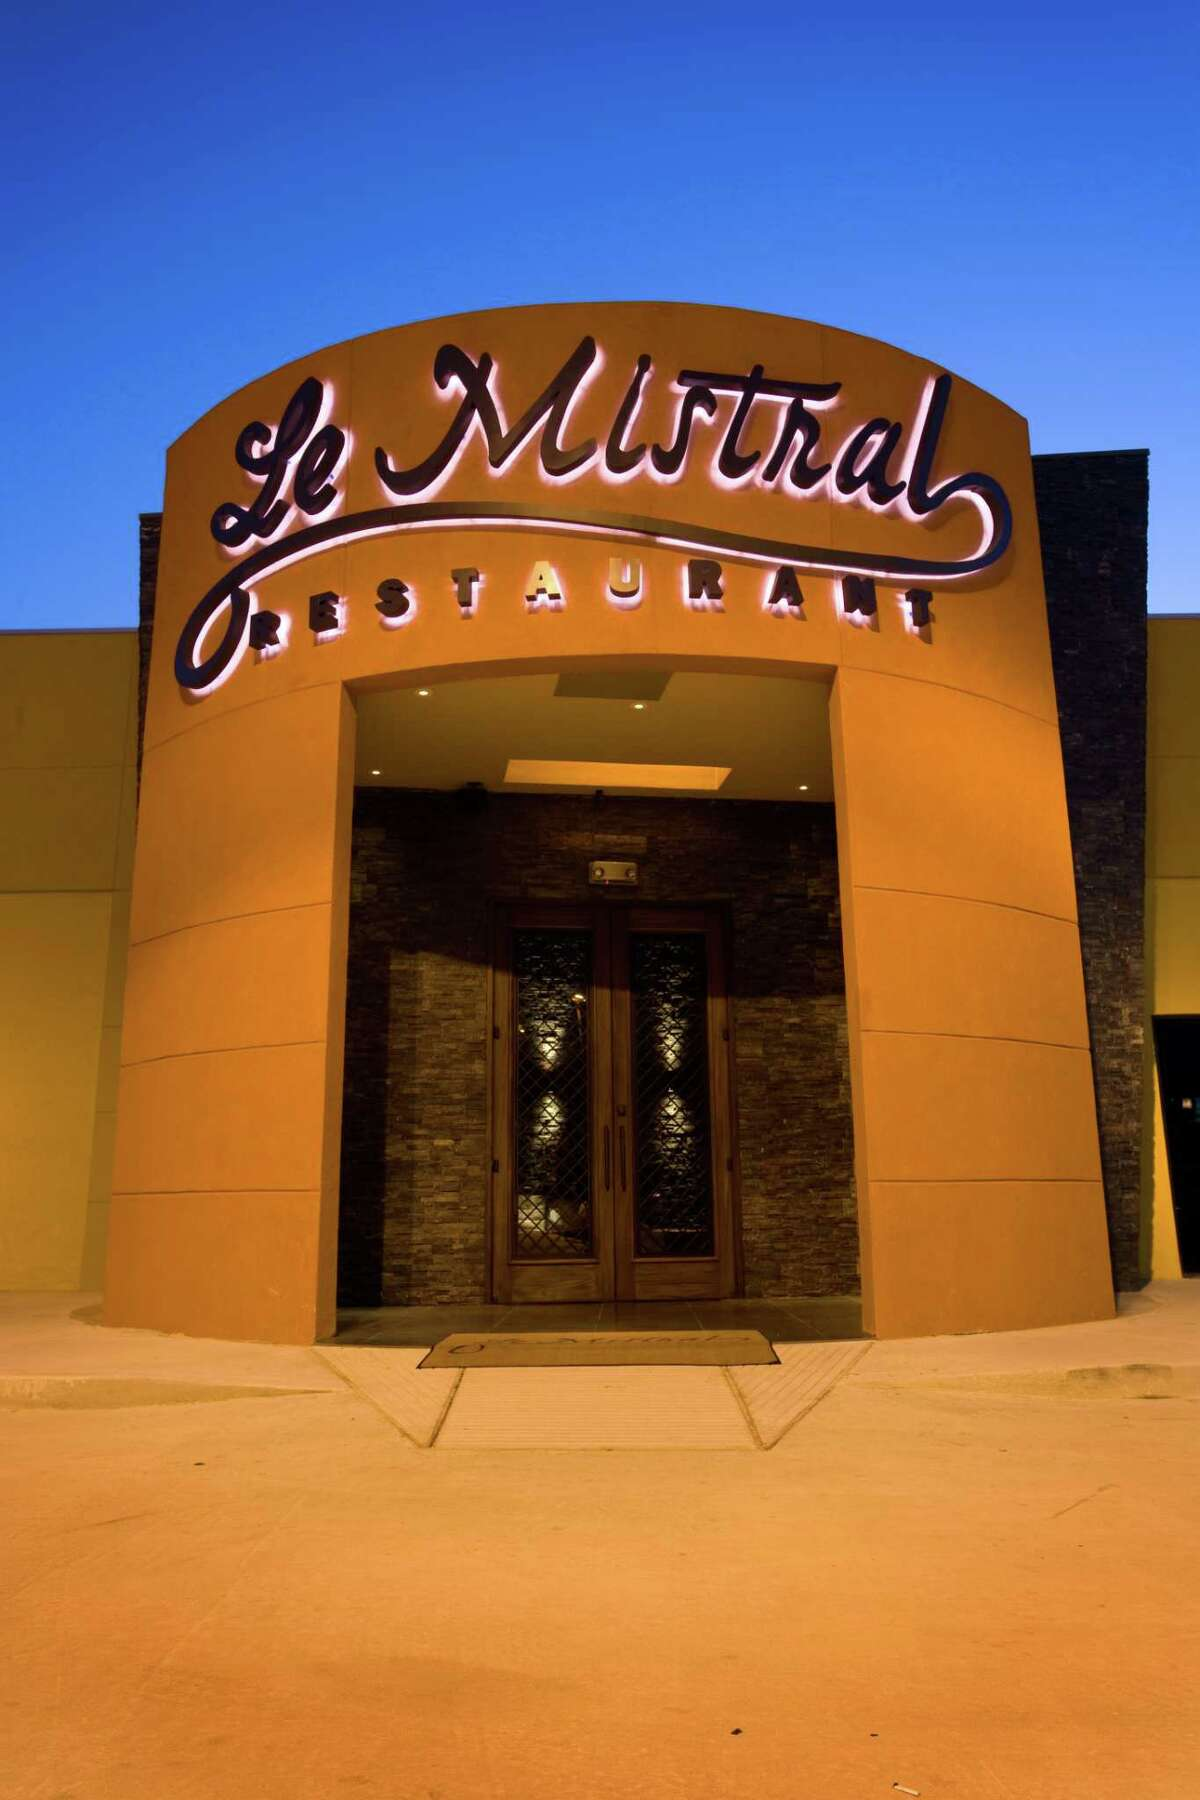 Le Mistral restaurant at 1400 Eldridge Parkway in the Energy Corridor has closed after 18 years.